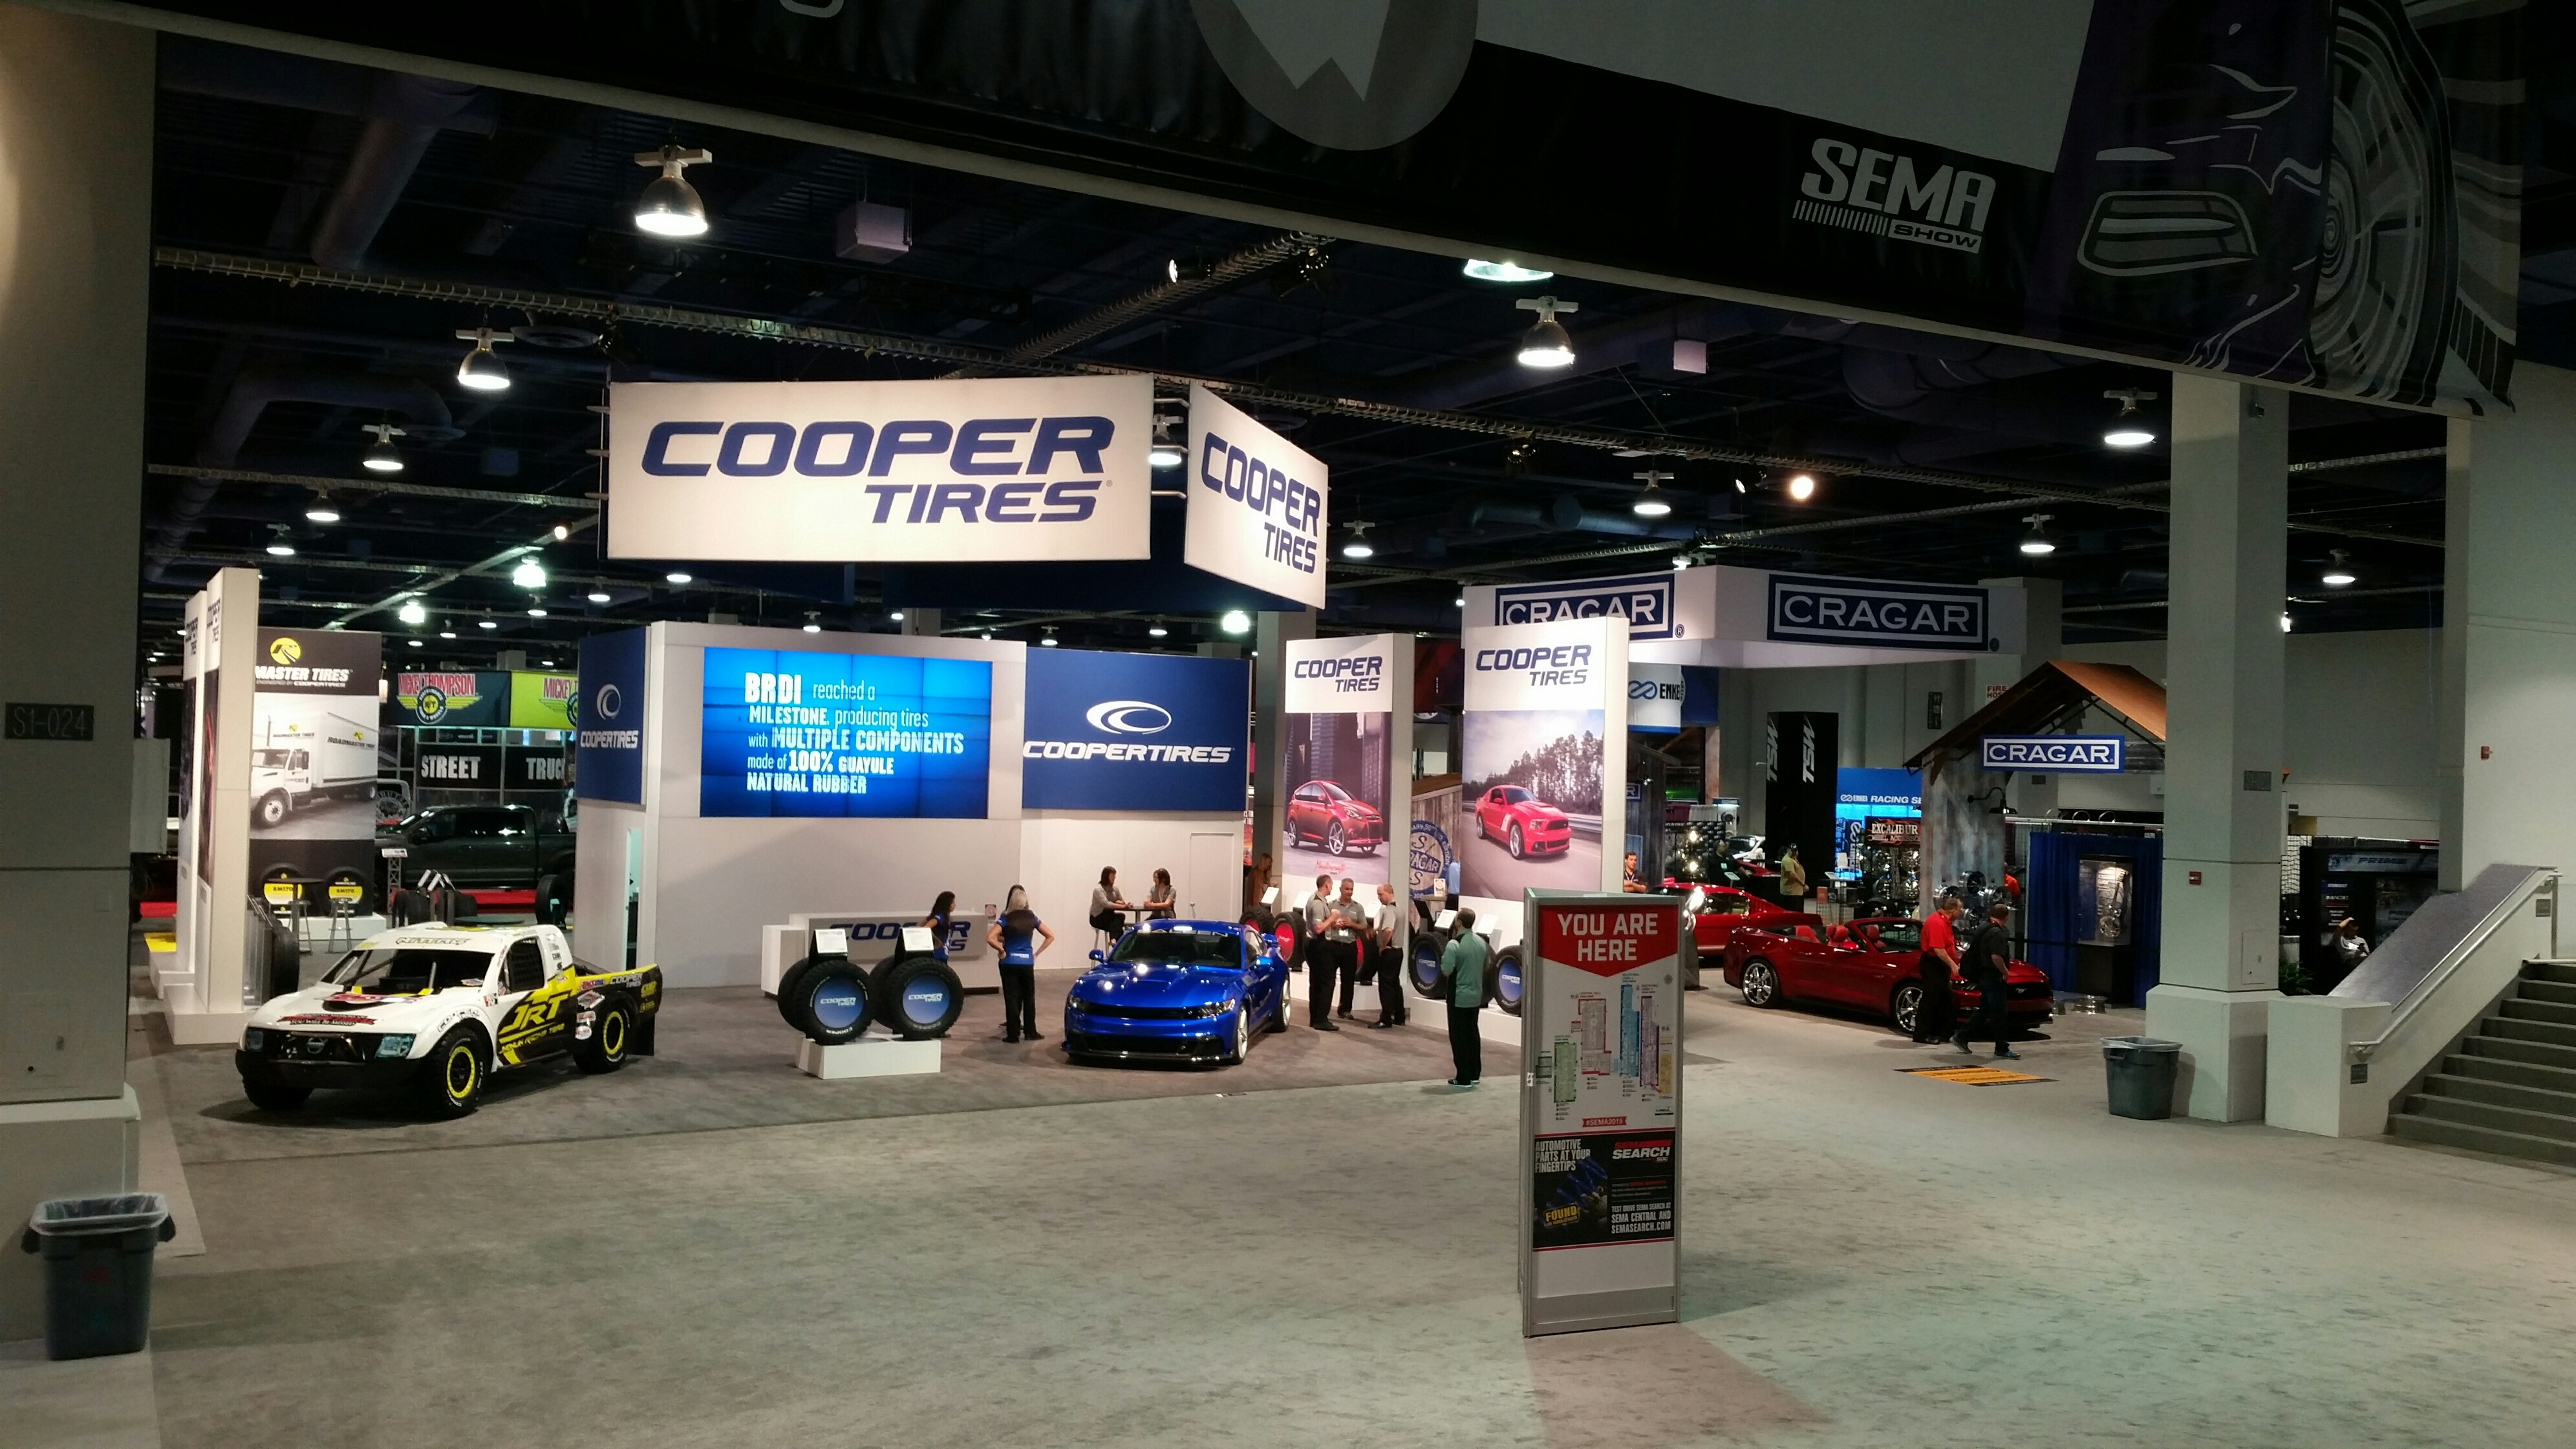 2015 SEMA Show, Day 1: Cooper Showcases Key Product Lineup